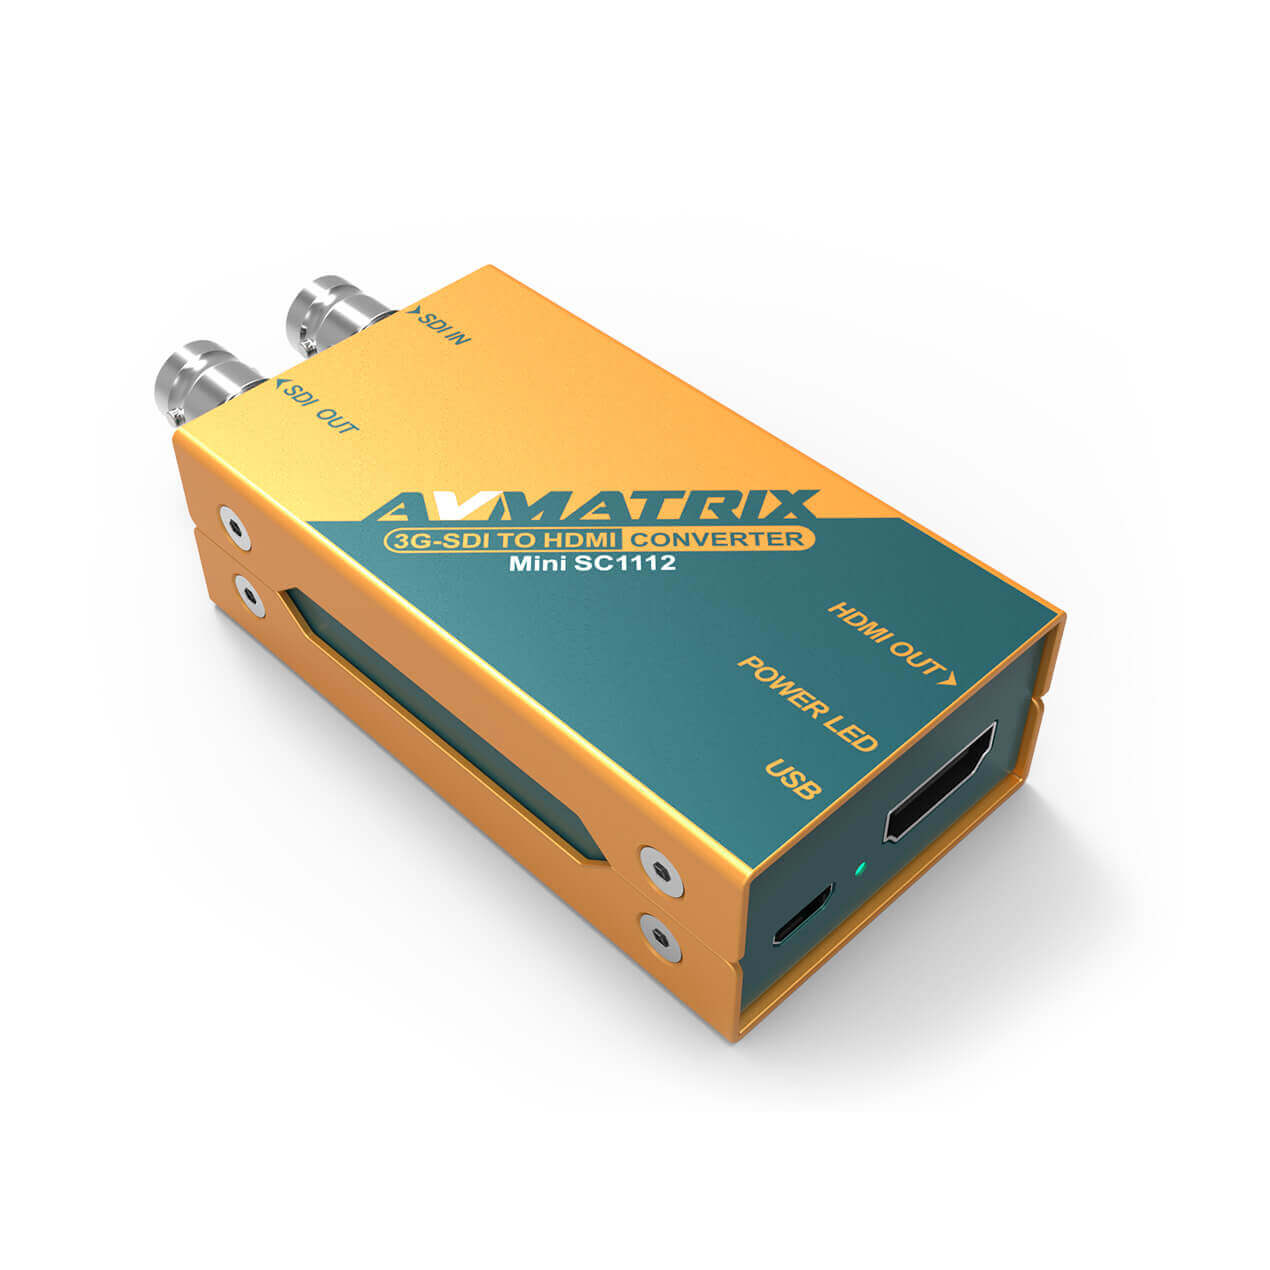 Bộ Converter Mini 3G-SDI to HDMI  Avmatrix  SC1112